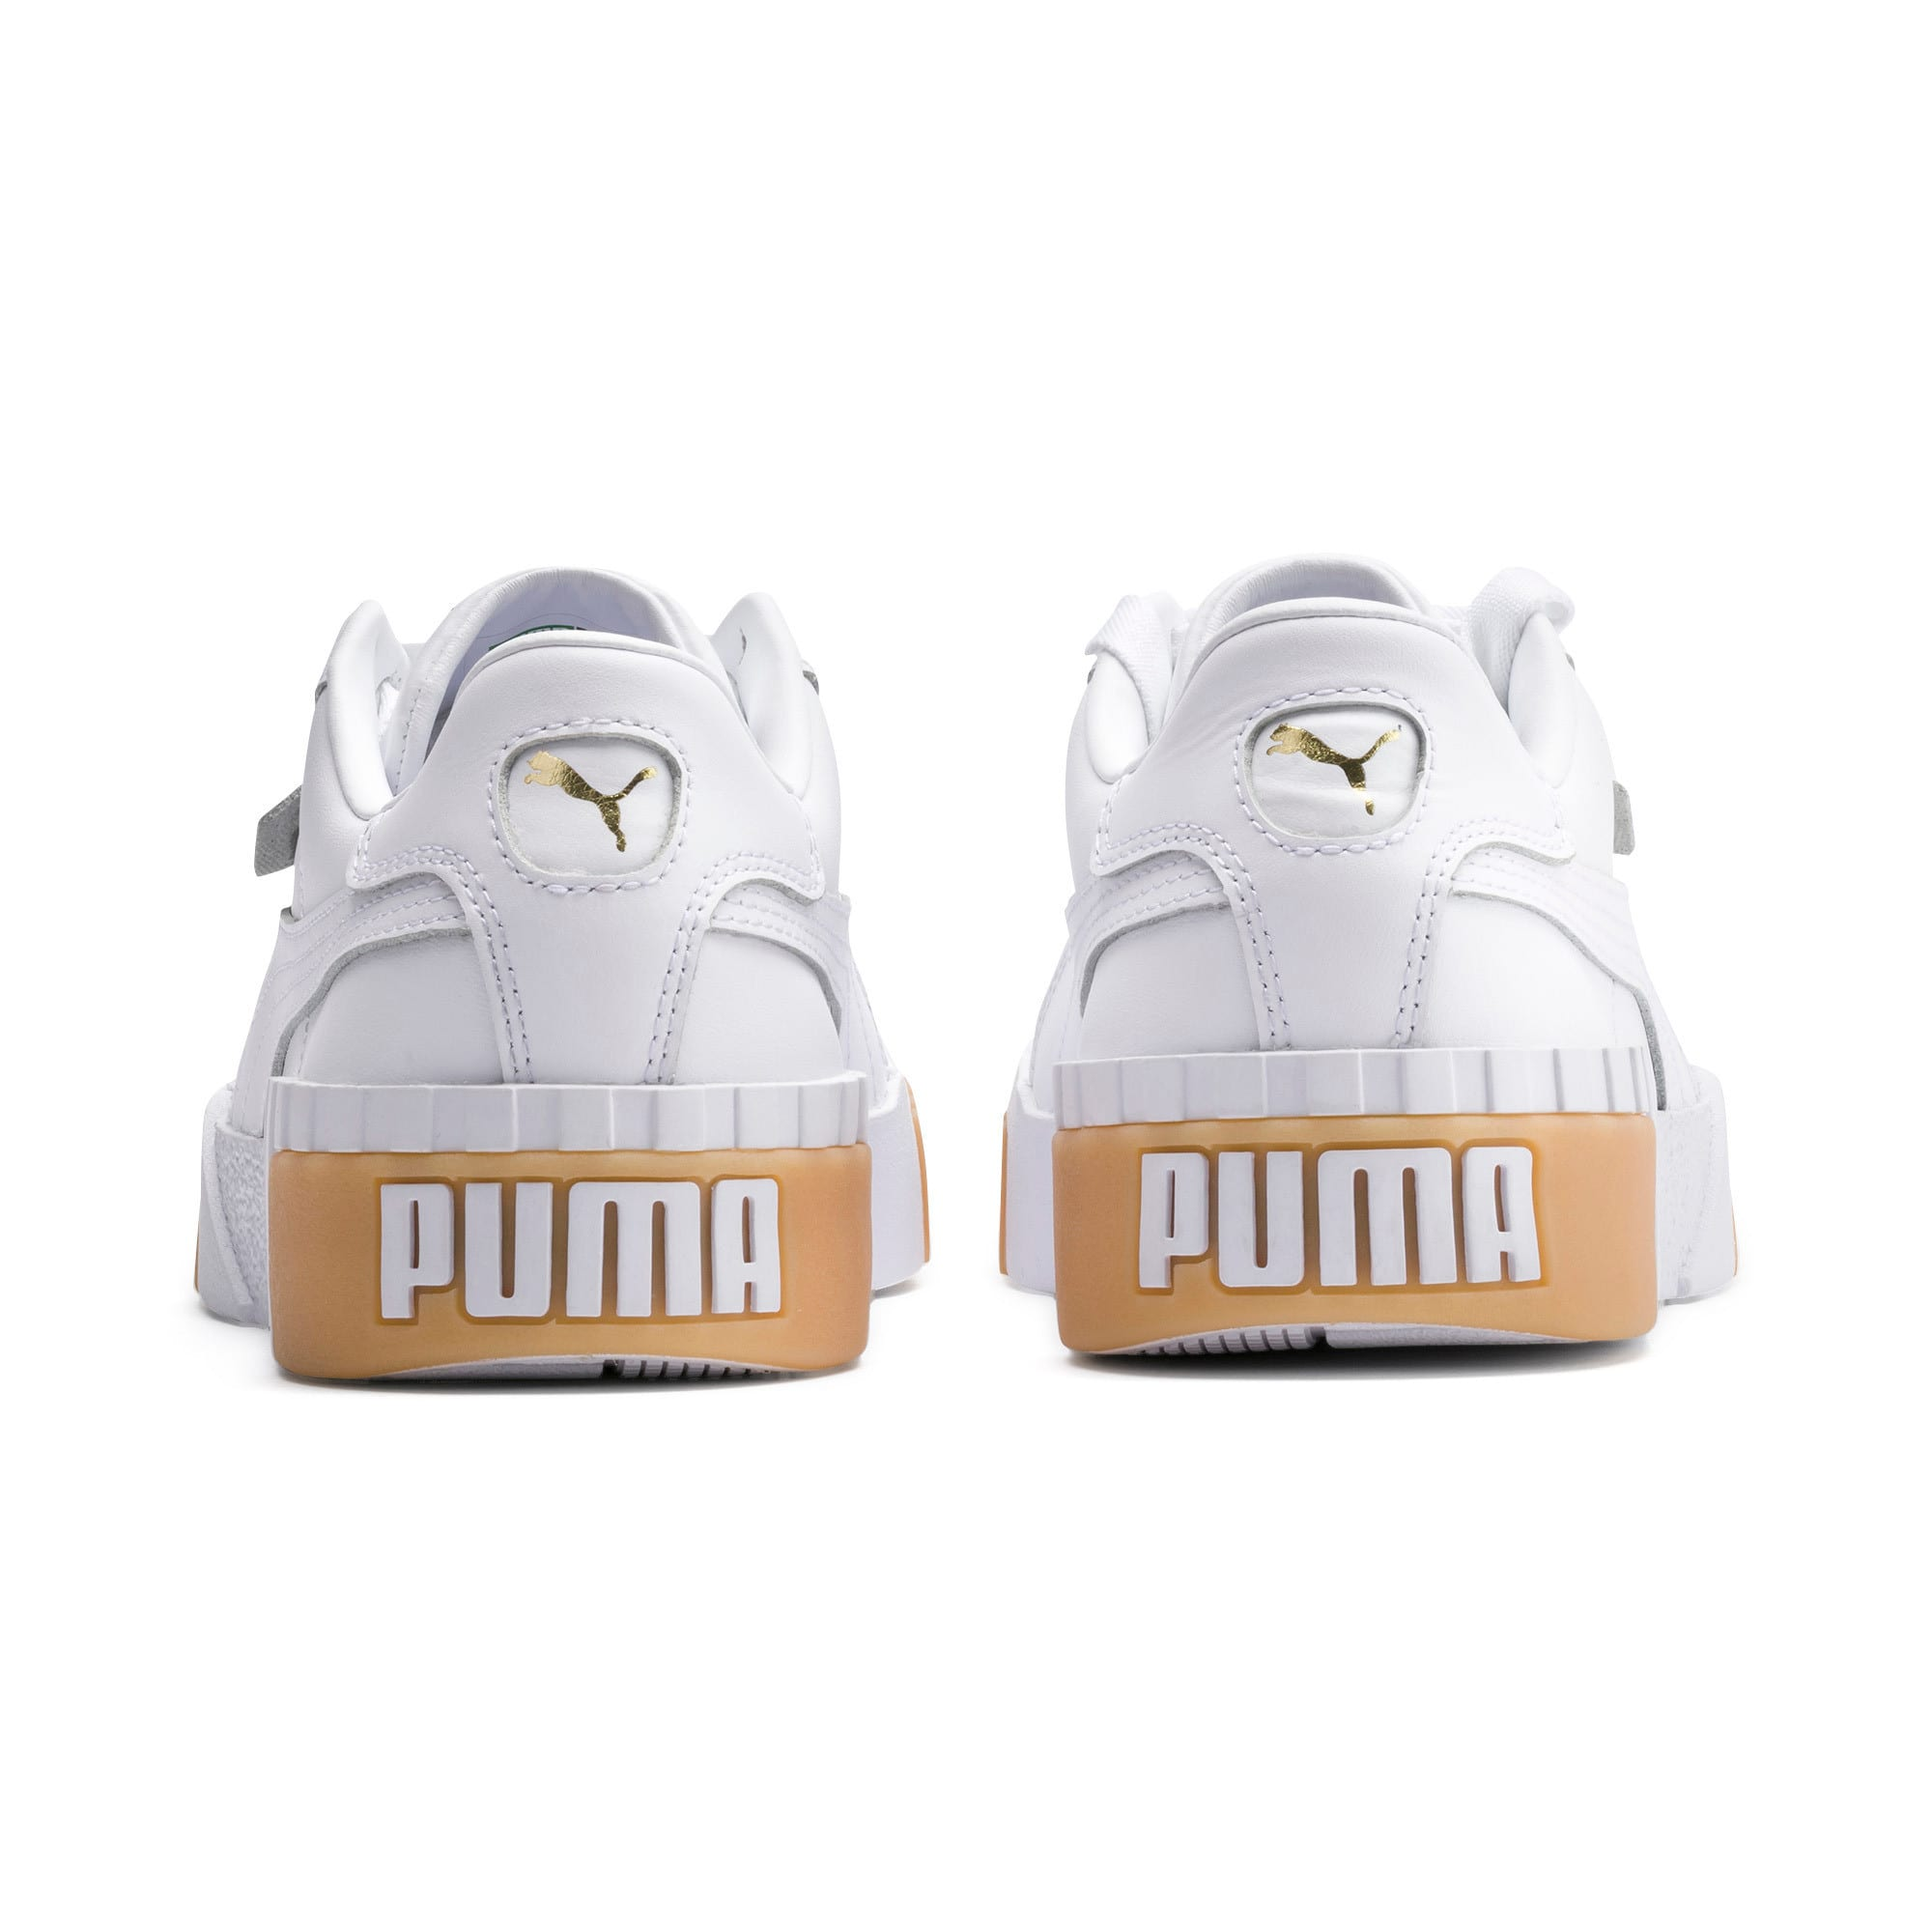 Thumbnail 3 of Zapatillas de mujer Cali Exotic, Puma White-Puma White, medium